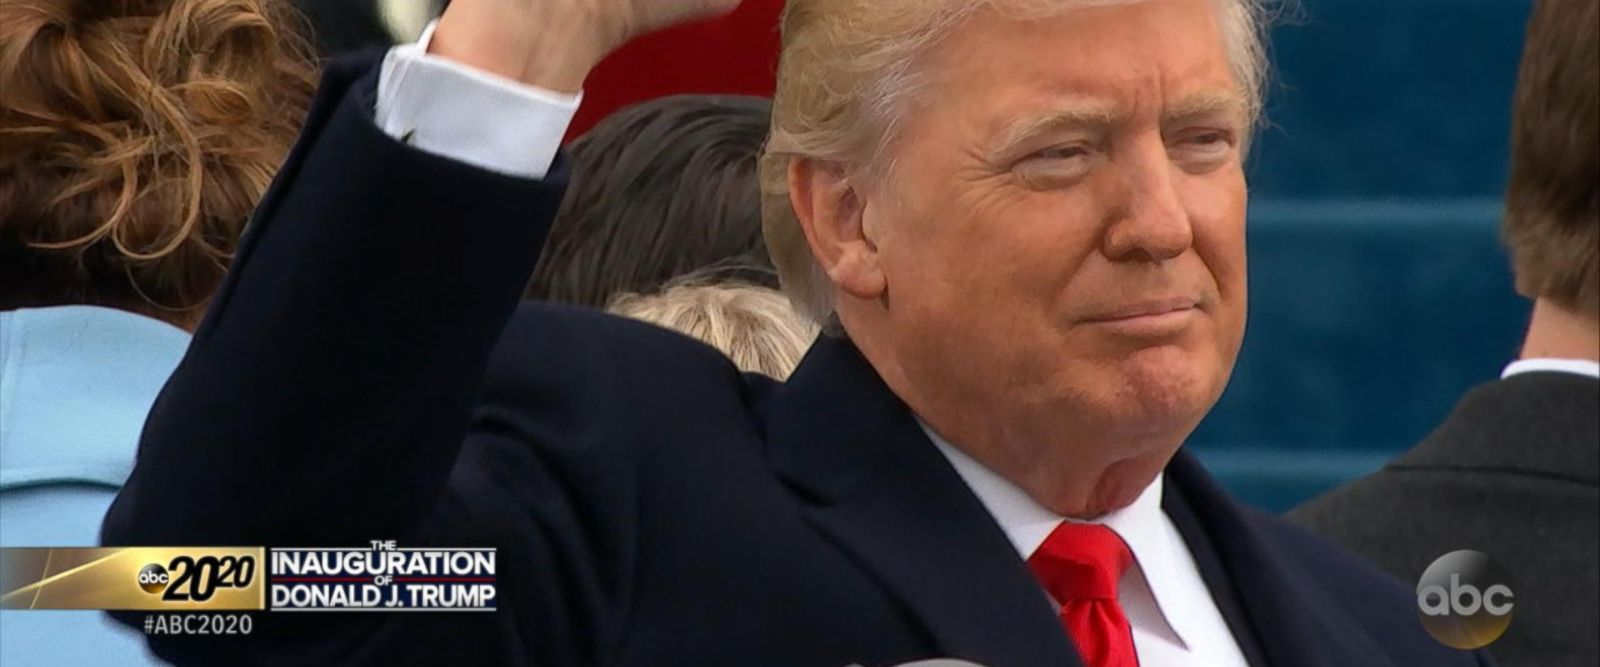 VIDEO: Donald Trump, the President and the So-Called Performance Artist